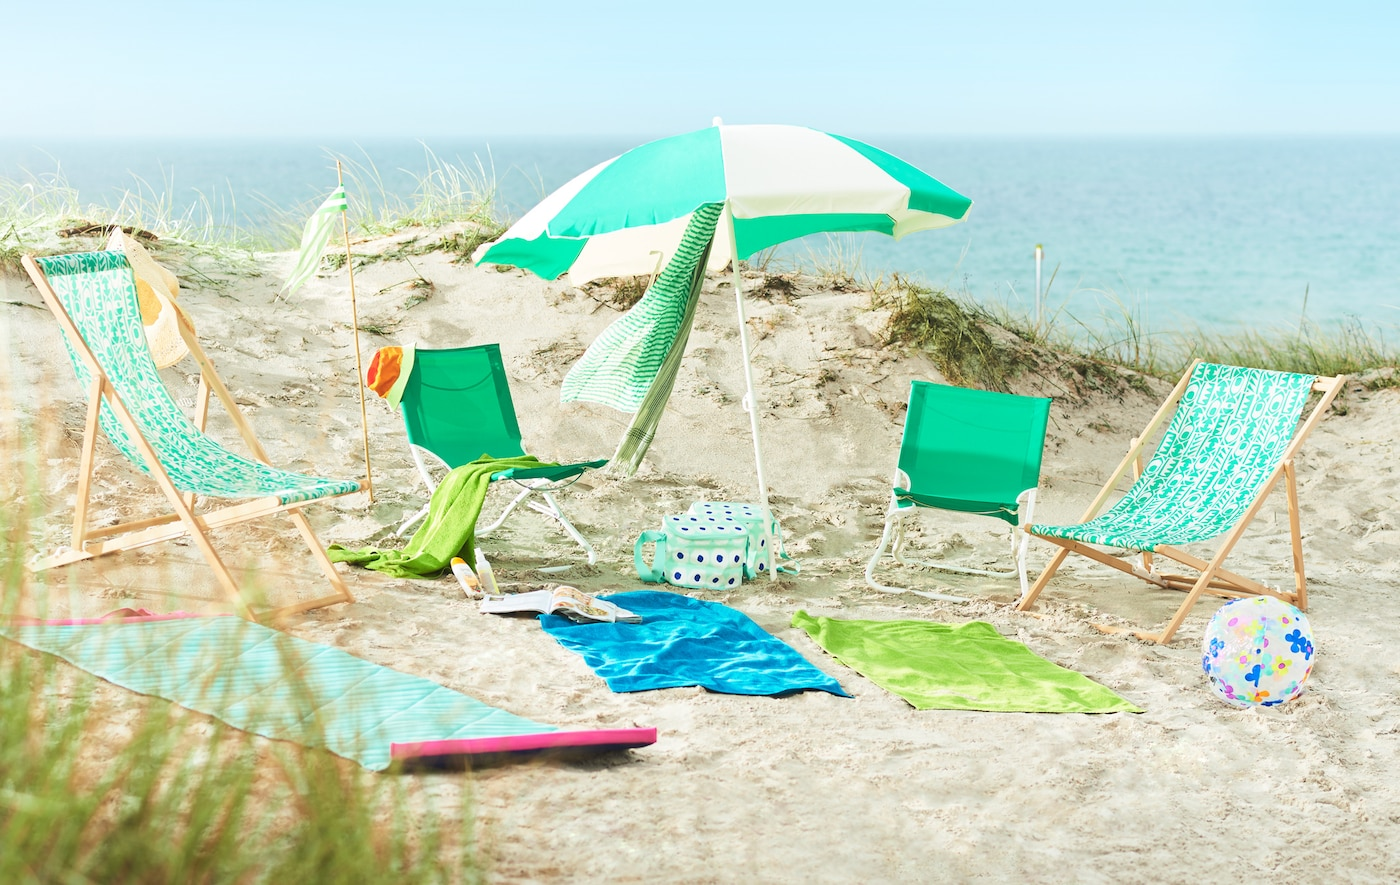 Create a stress-free family beach trip by using outdoor furniture in lightweight material that's made for sun, sea and wind.